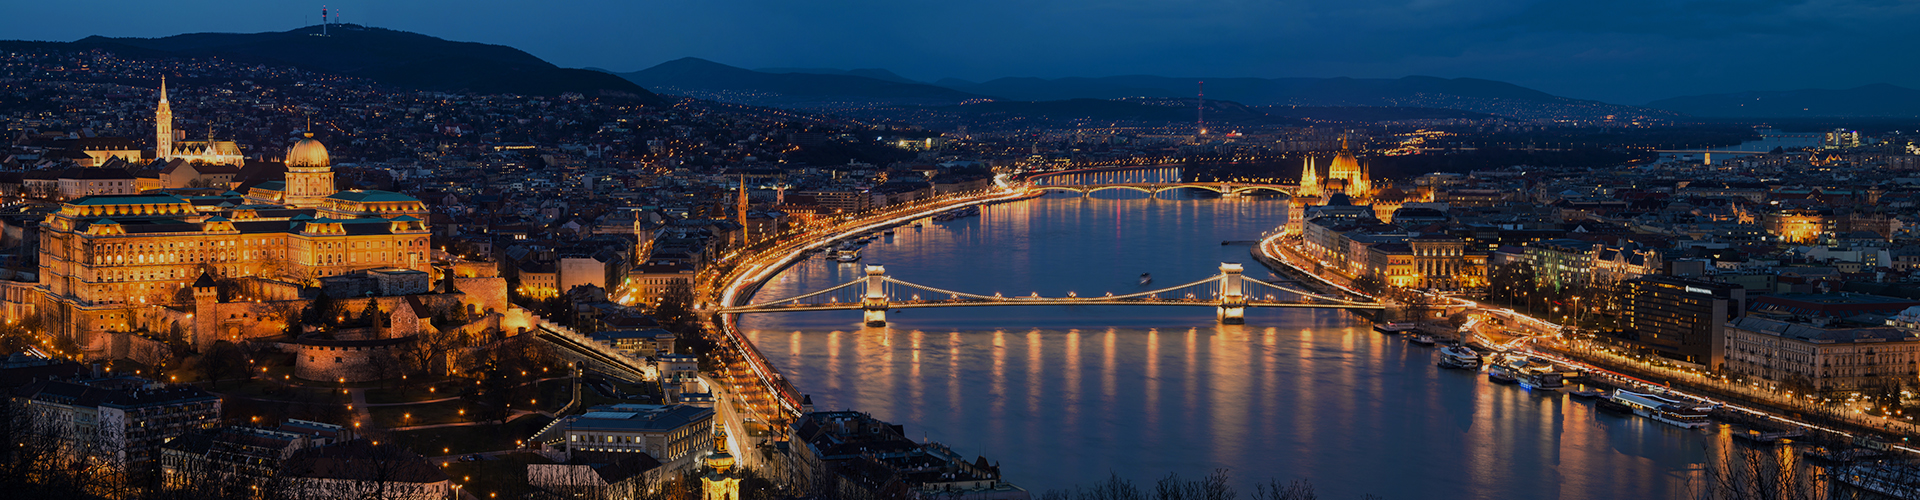 Landmark photograph of Hungary